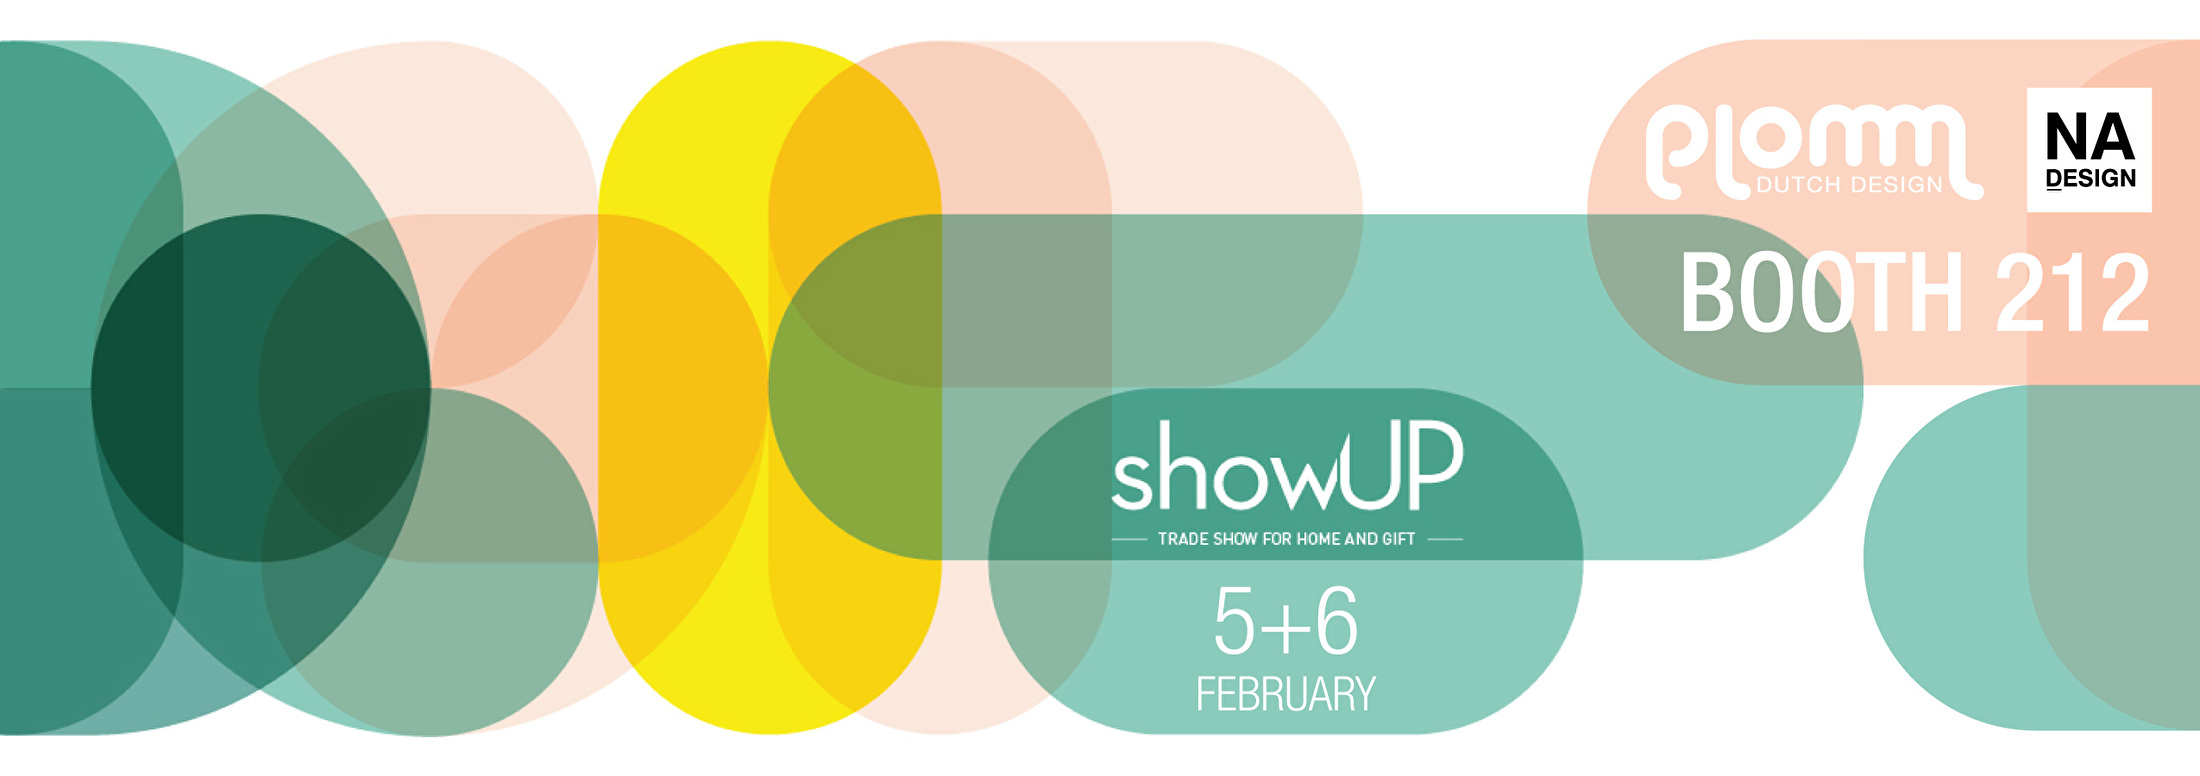 showUP 5+6 FEBRUARY - BOOTH 212 - NADESIGN